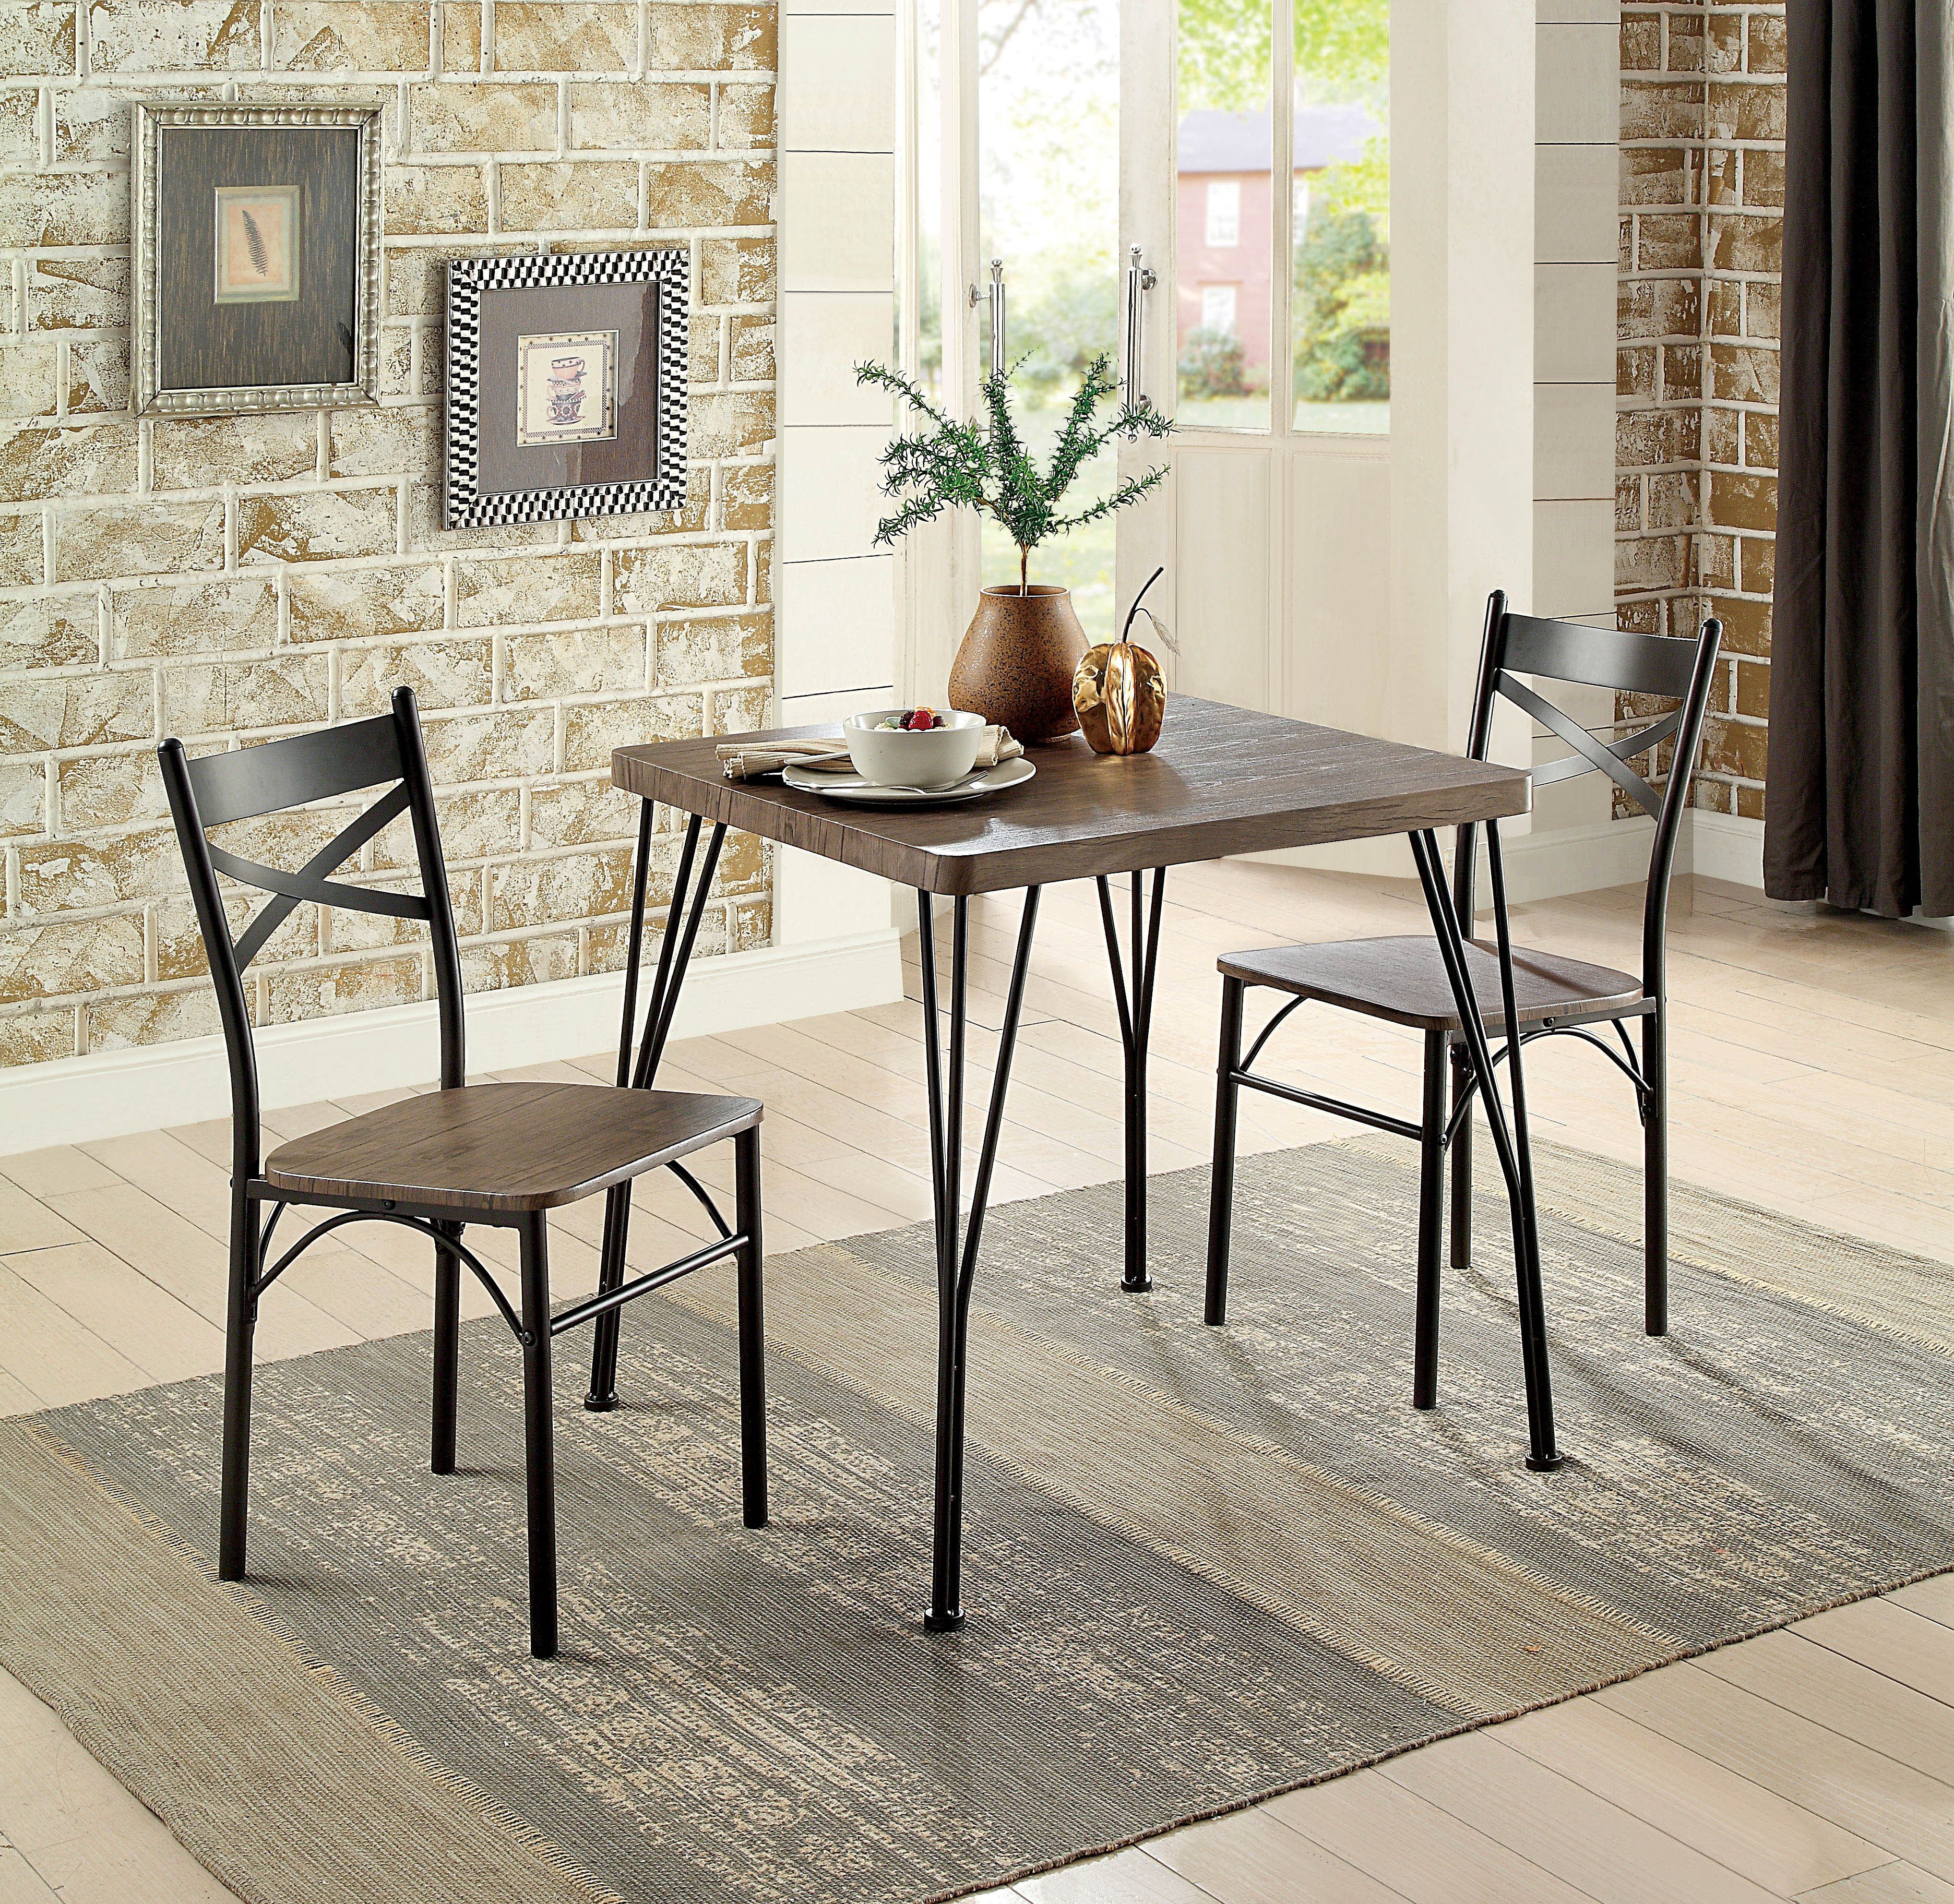 2019 Wiggs 5 Piece Dining Sets Intended For Guertin 3 Piece Dining Set & Reviews (View 20 of 25)